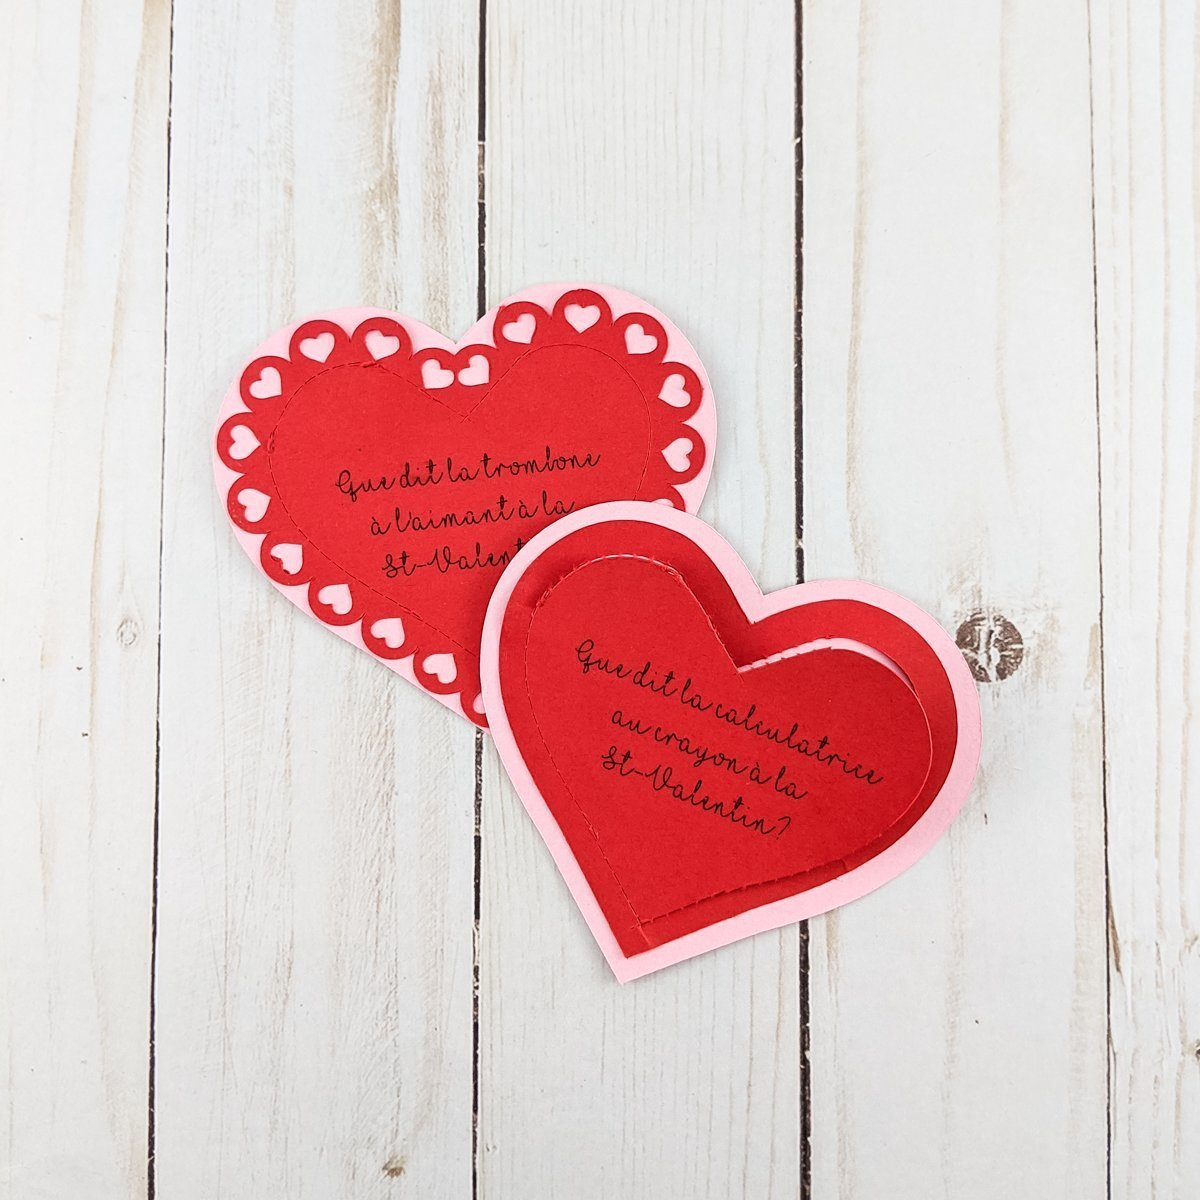 Two love notes for Valentine's day made using Flatten in Cricut Design Space